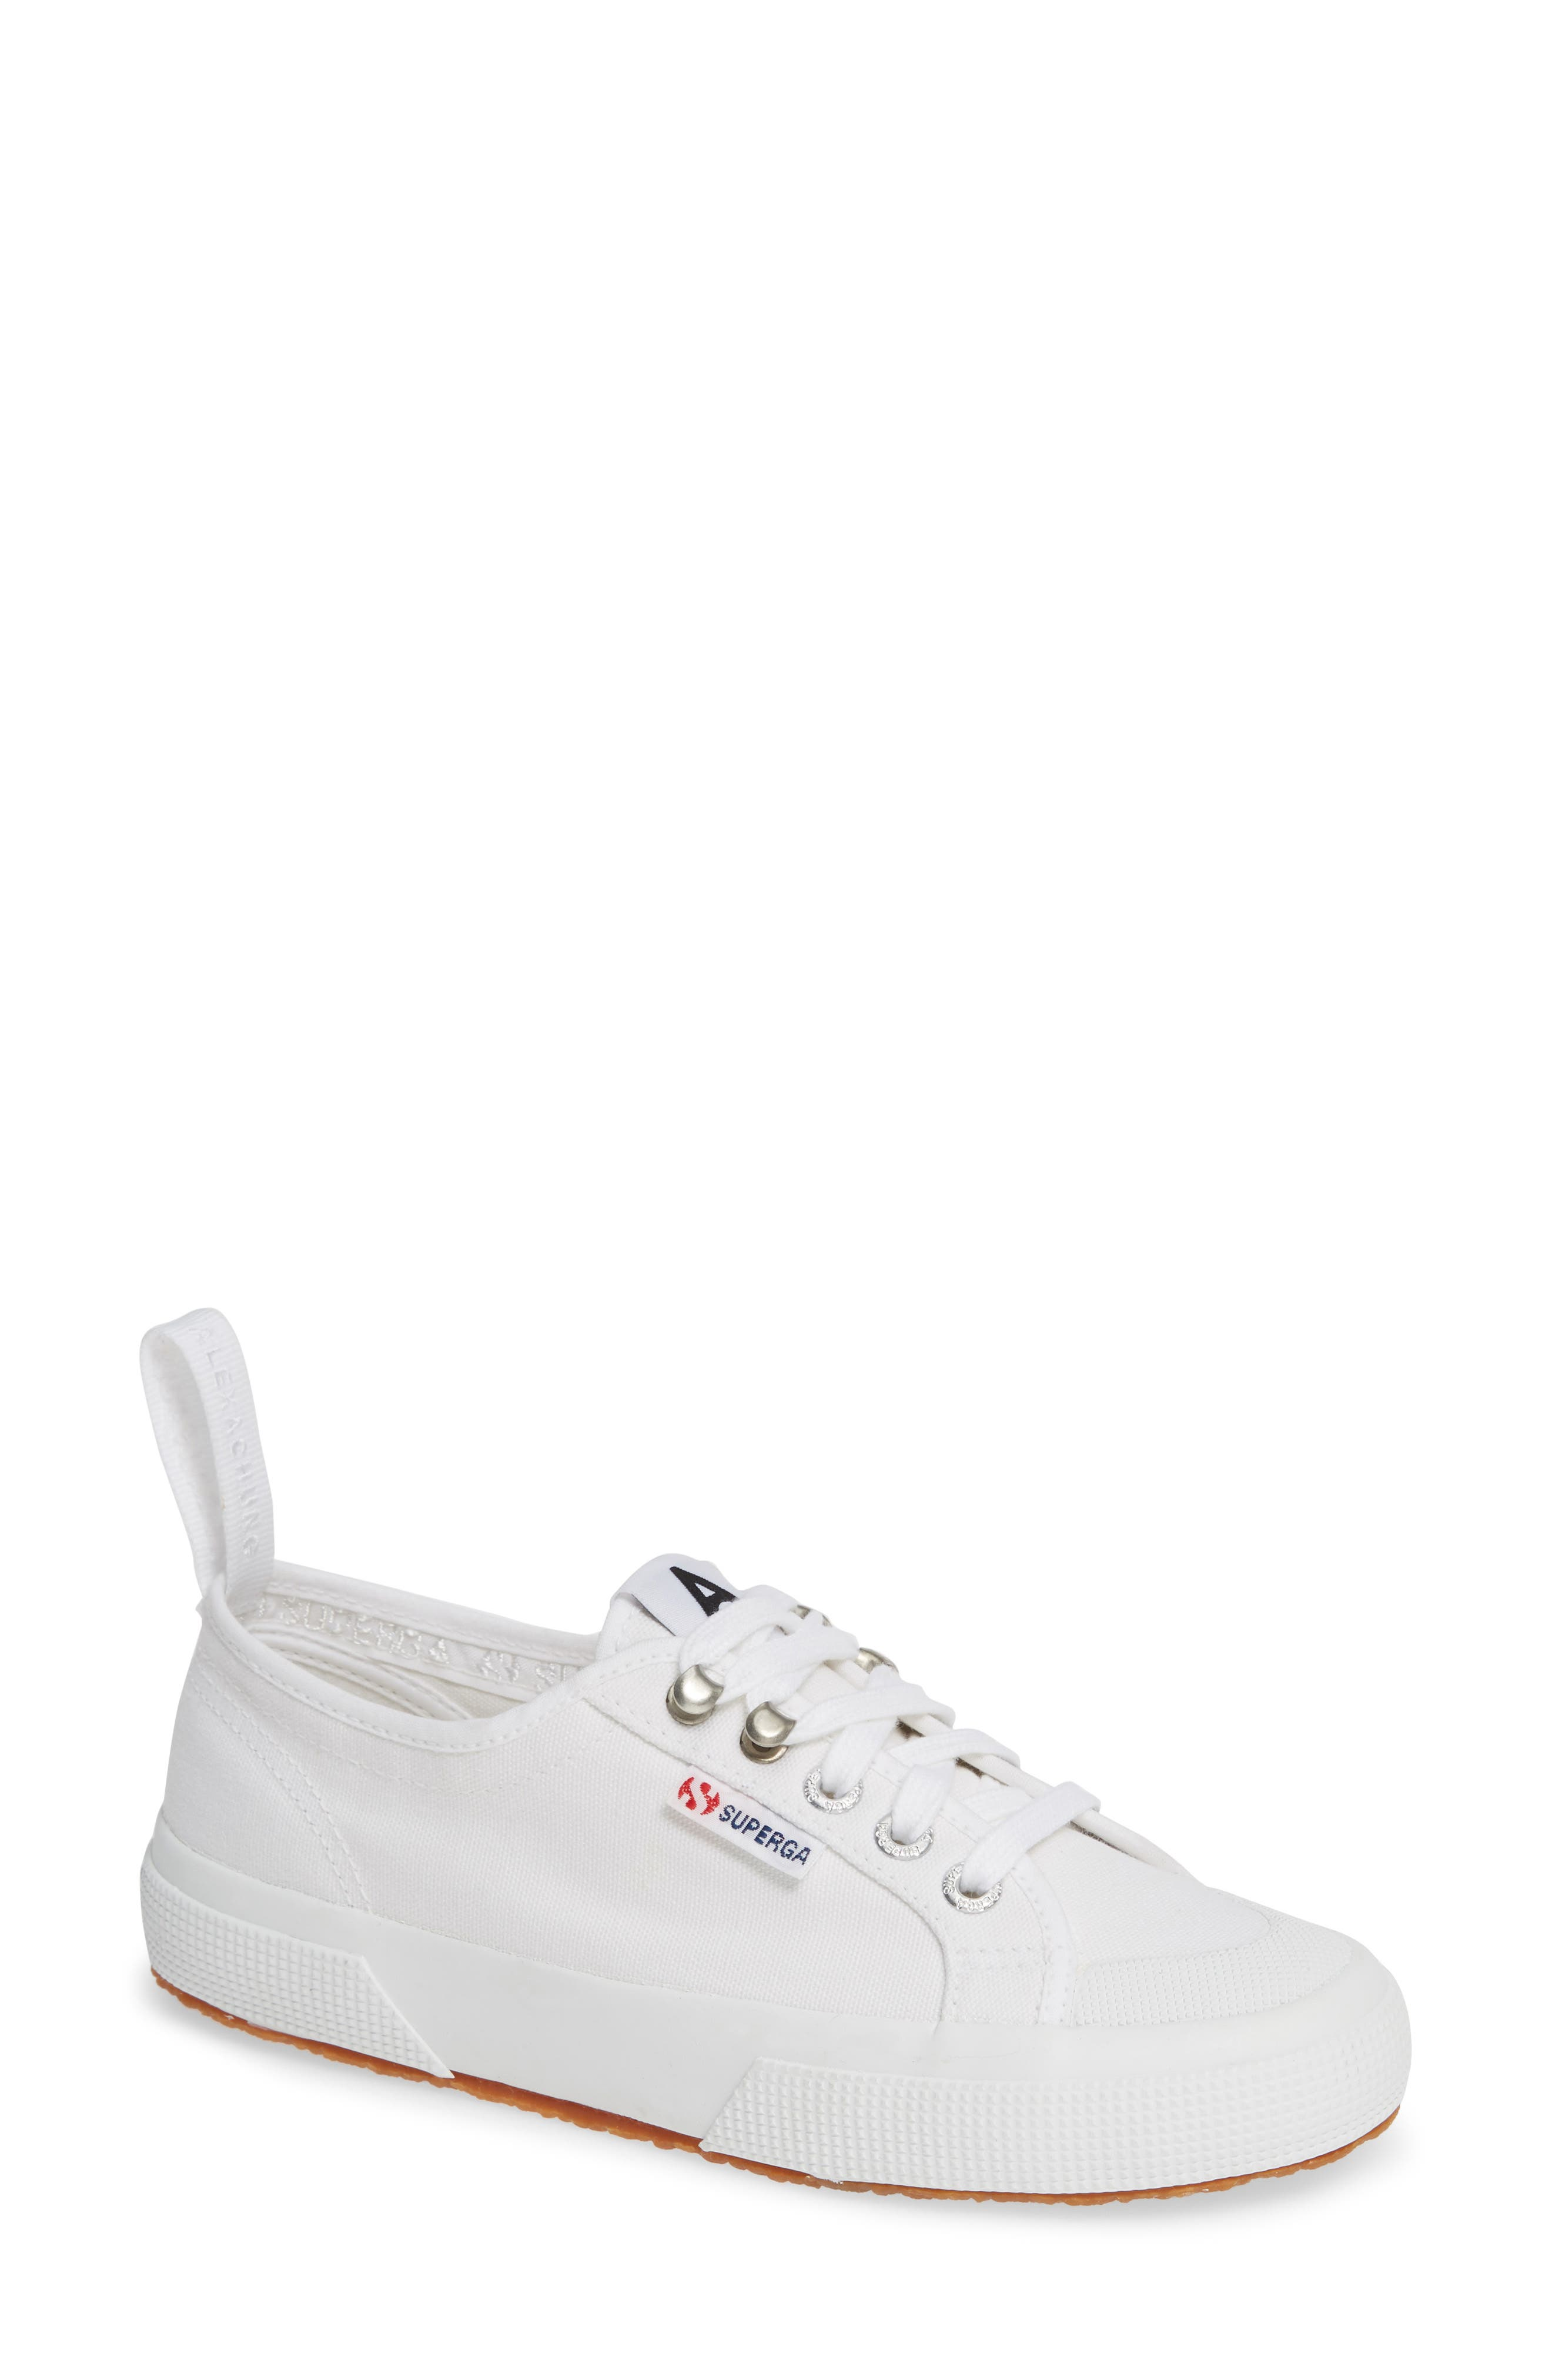 x Alexa Chung 2294 Cothookw Low Top Sneaker,                         Main,                         color, WHITE